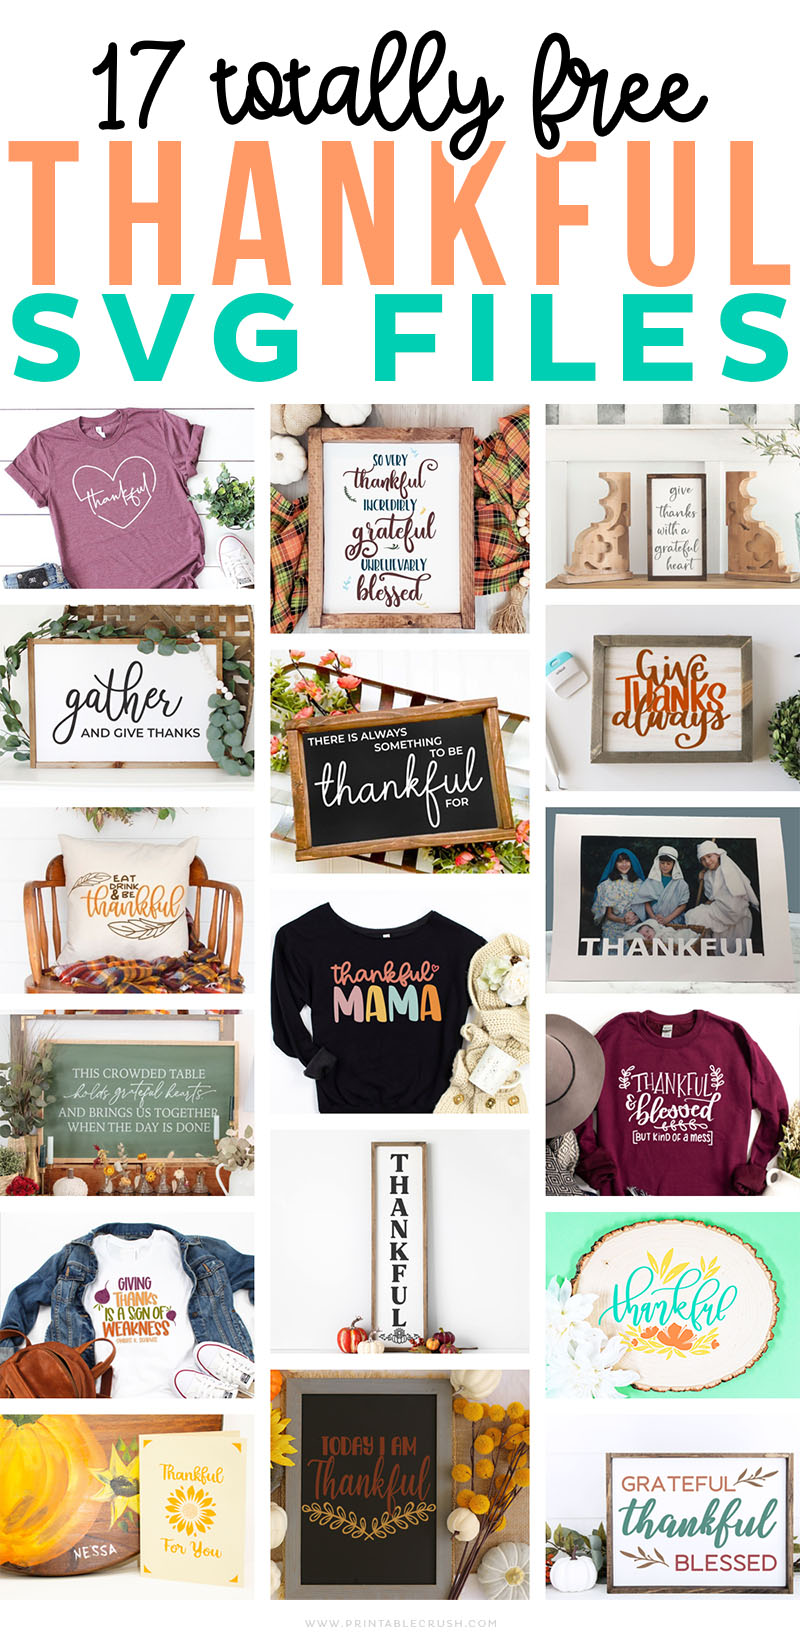 17 FREE Thankful SVG Files - free Thanksgiving SVG Files - Printable Crush